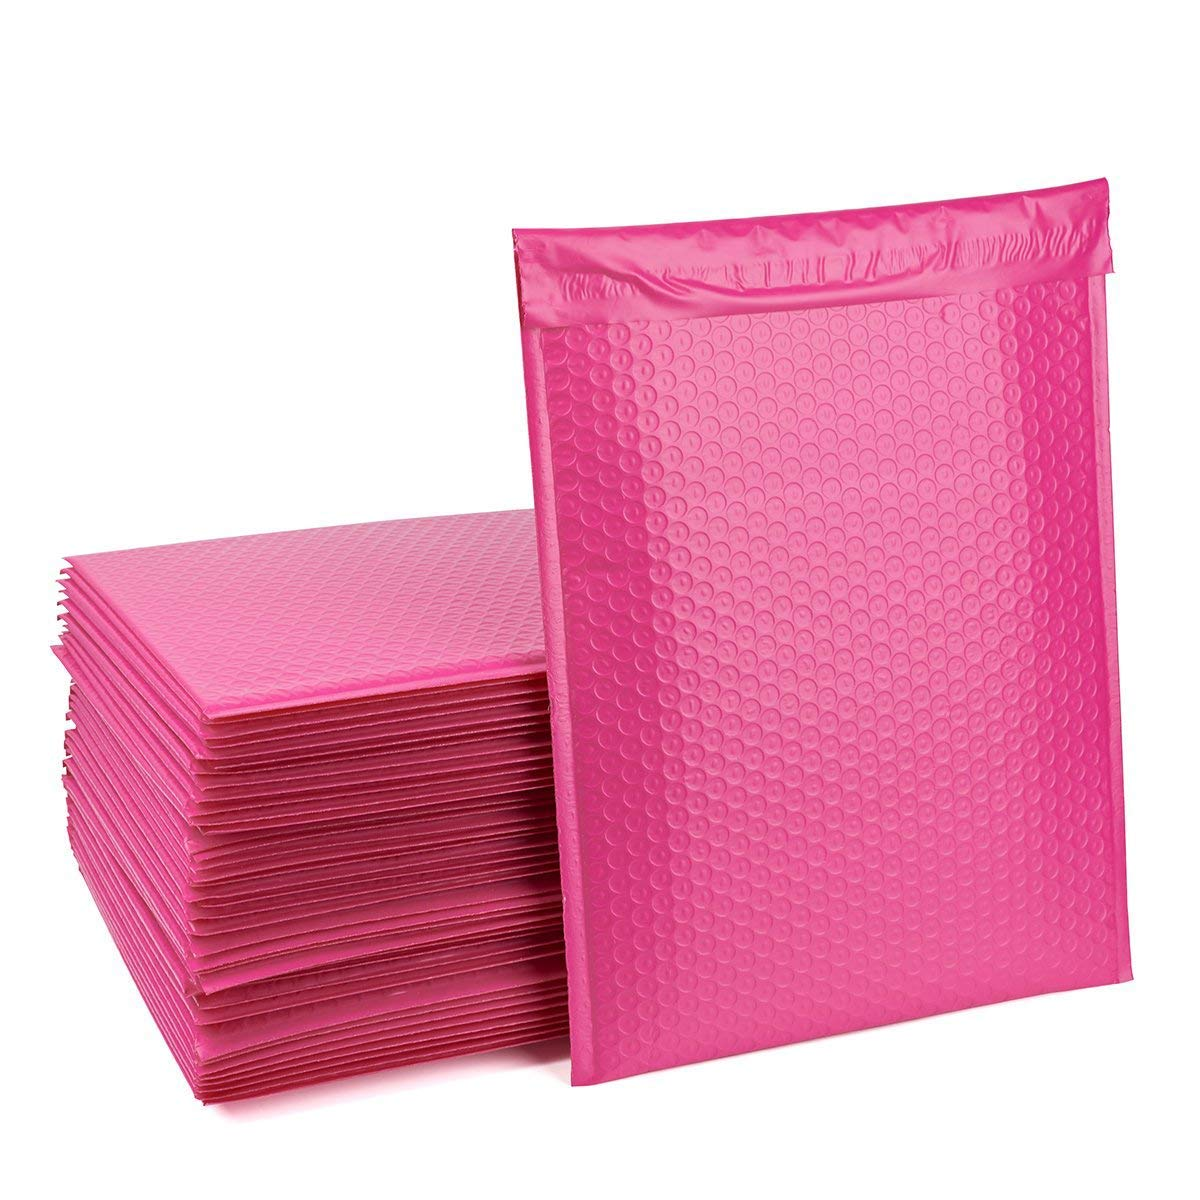 FU GLOBAL #5 Pink Bubble Mailers 10.5x16 Inch Padded Envelopes Pack of 25